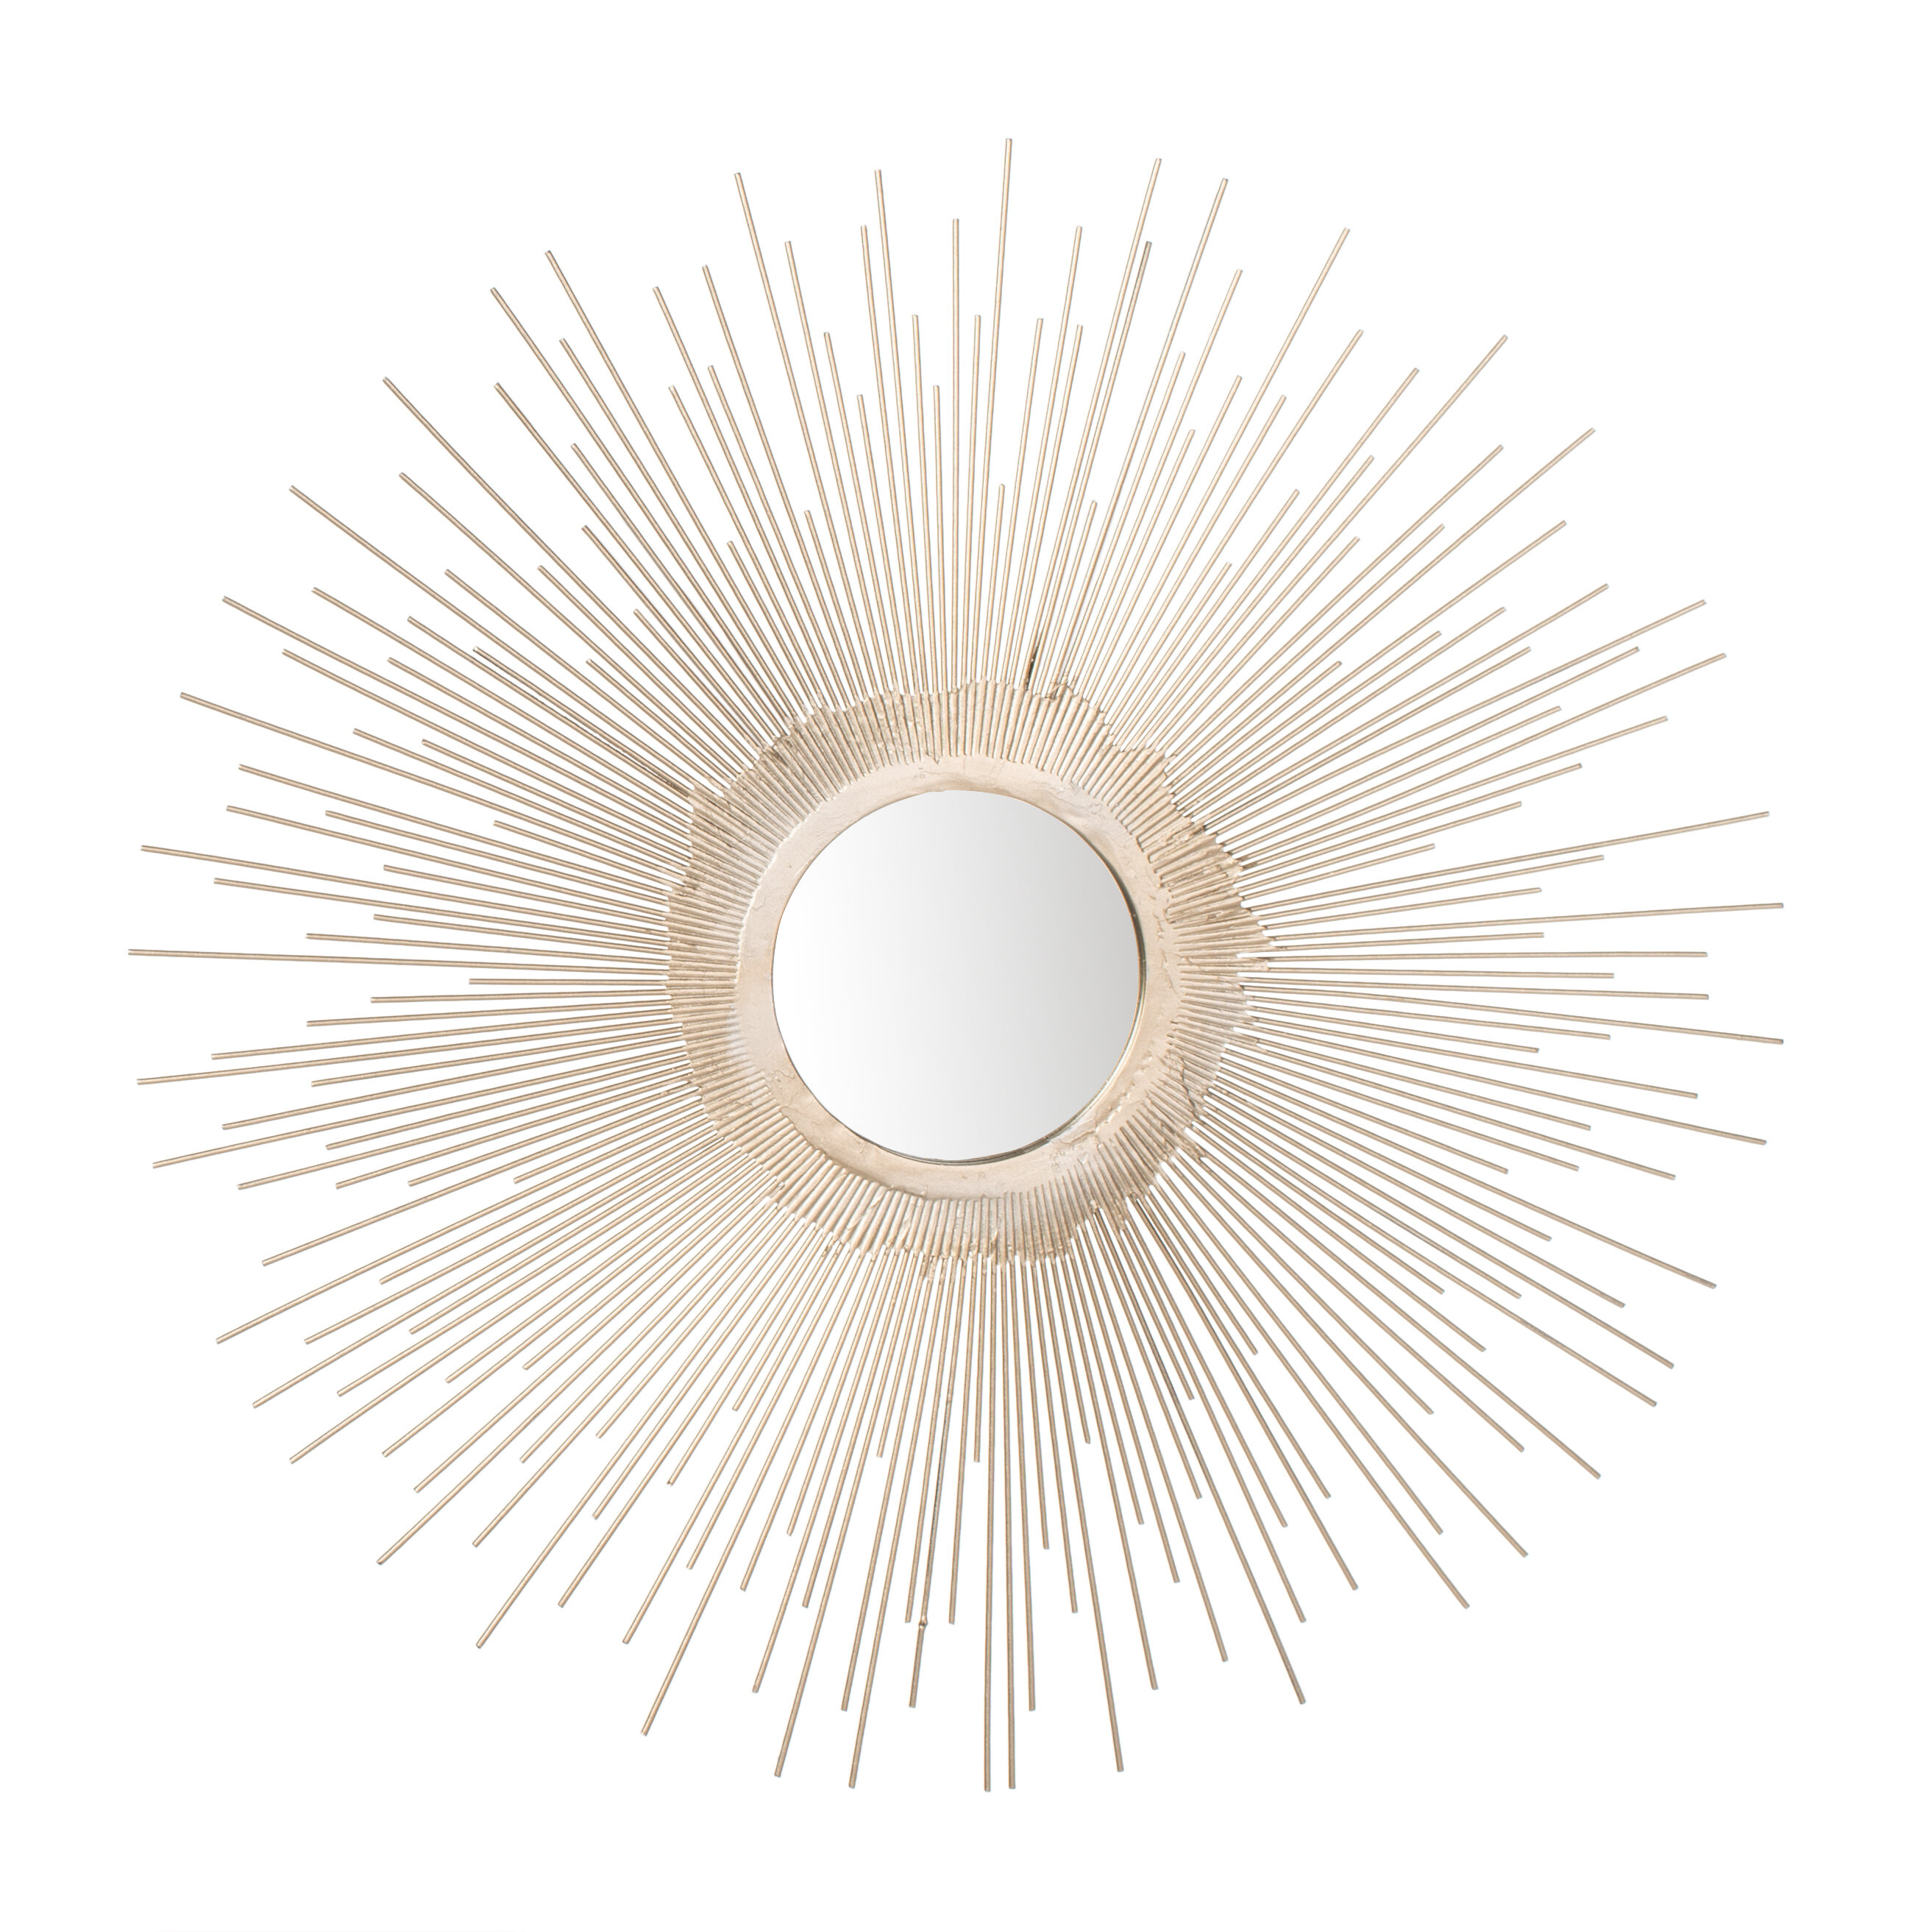 Bertsch Sunburst Modern And Contemporary Accent Mirror With Regard To Knott Modern & Contemporary Accent Mirrors (Image 4 of 20)